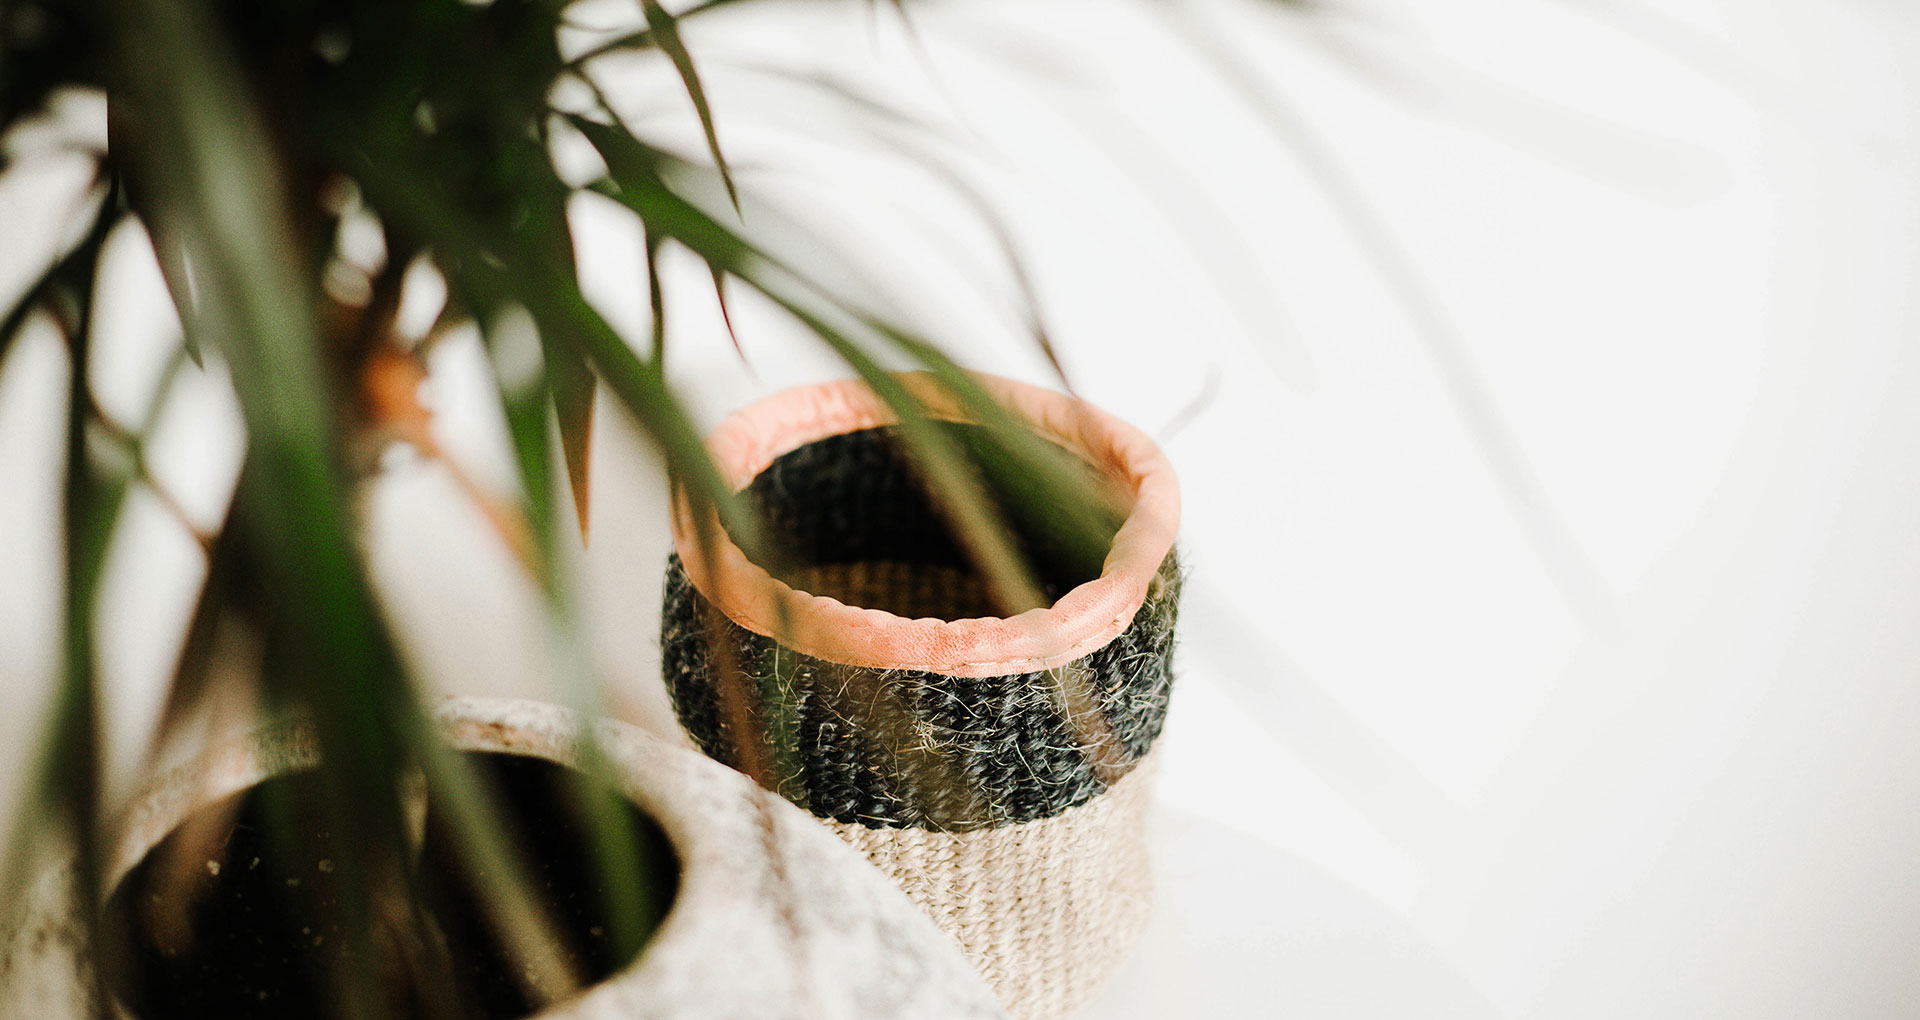 Handwoven Baskets